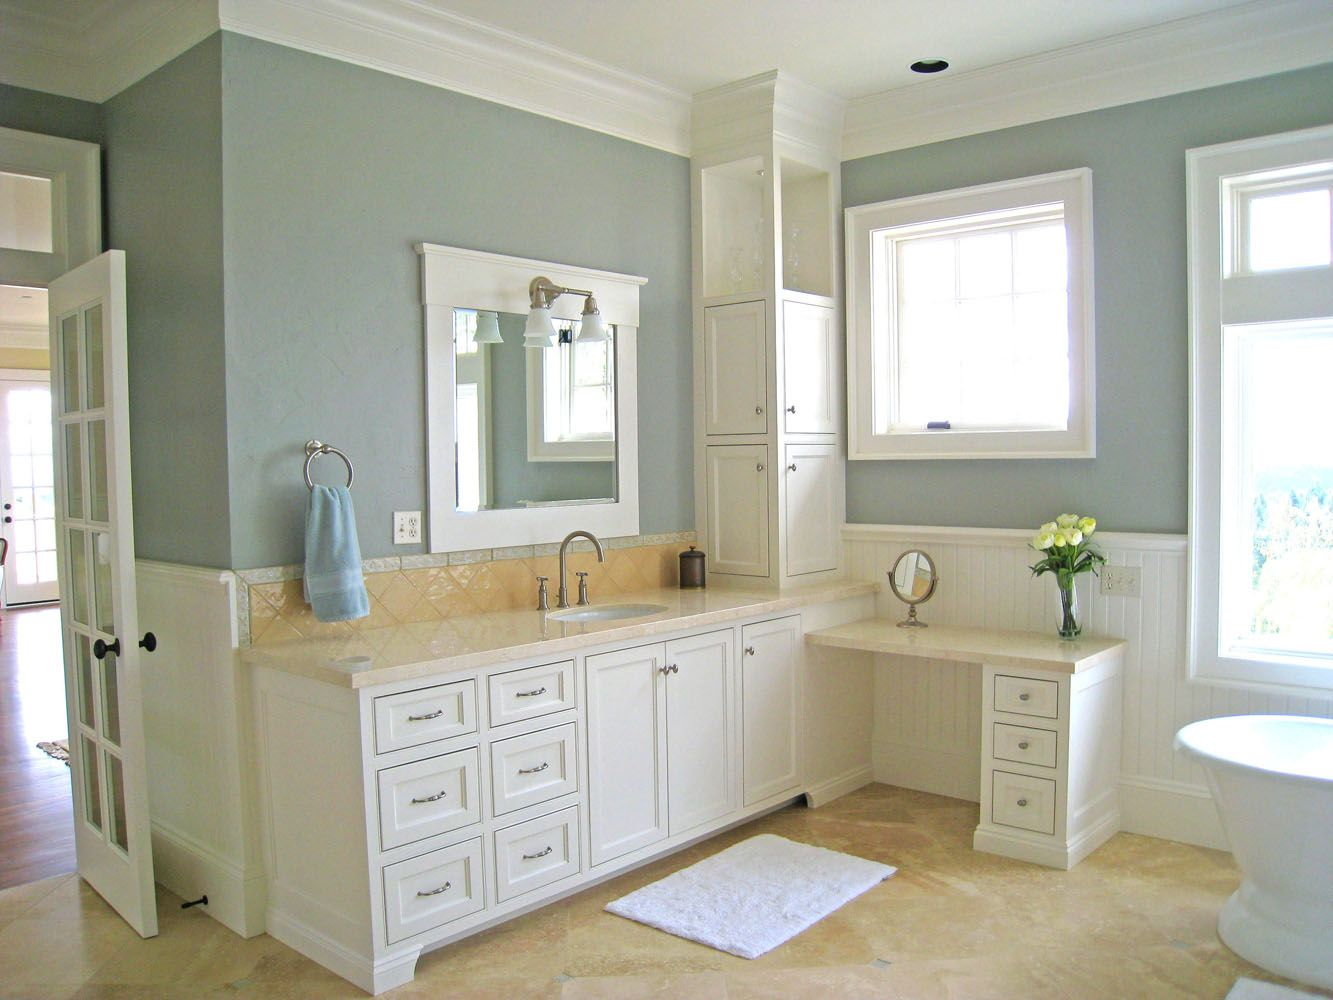 light and airy bathroom painting ideas ideas interactive bathroom design ideas with white - Bathroom Cabinet Design